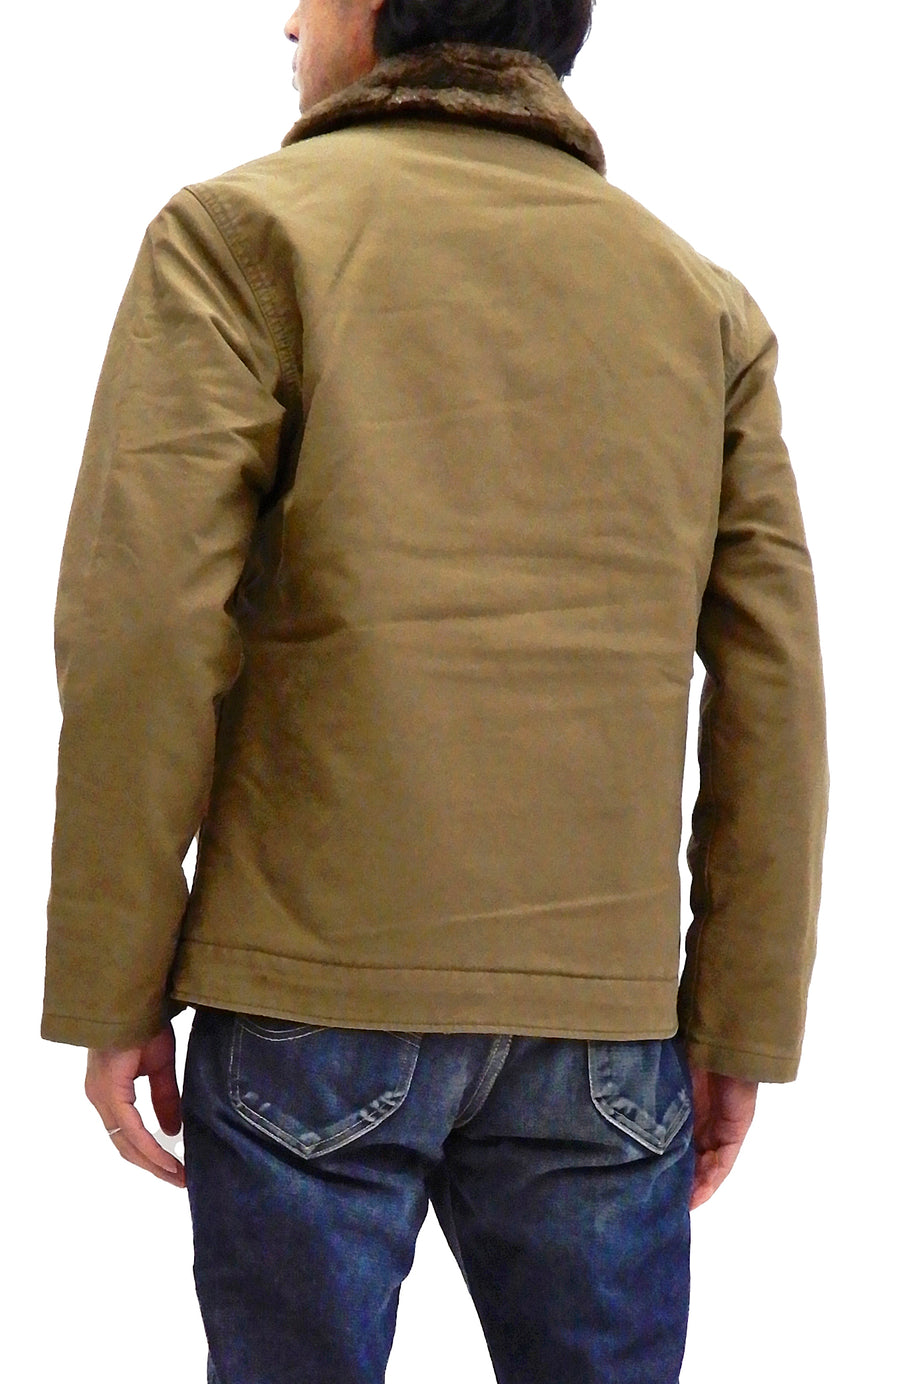 Alpha Industries N-1 Deck Jacket Men's US Navy WWII N1 Modify Version TA1395 Khaki